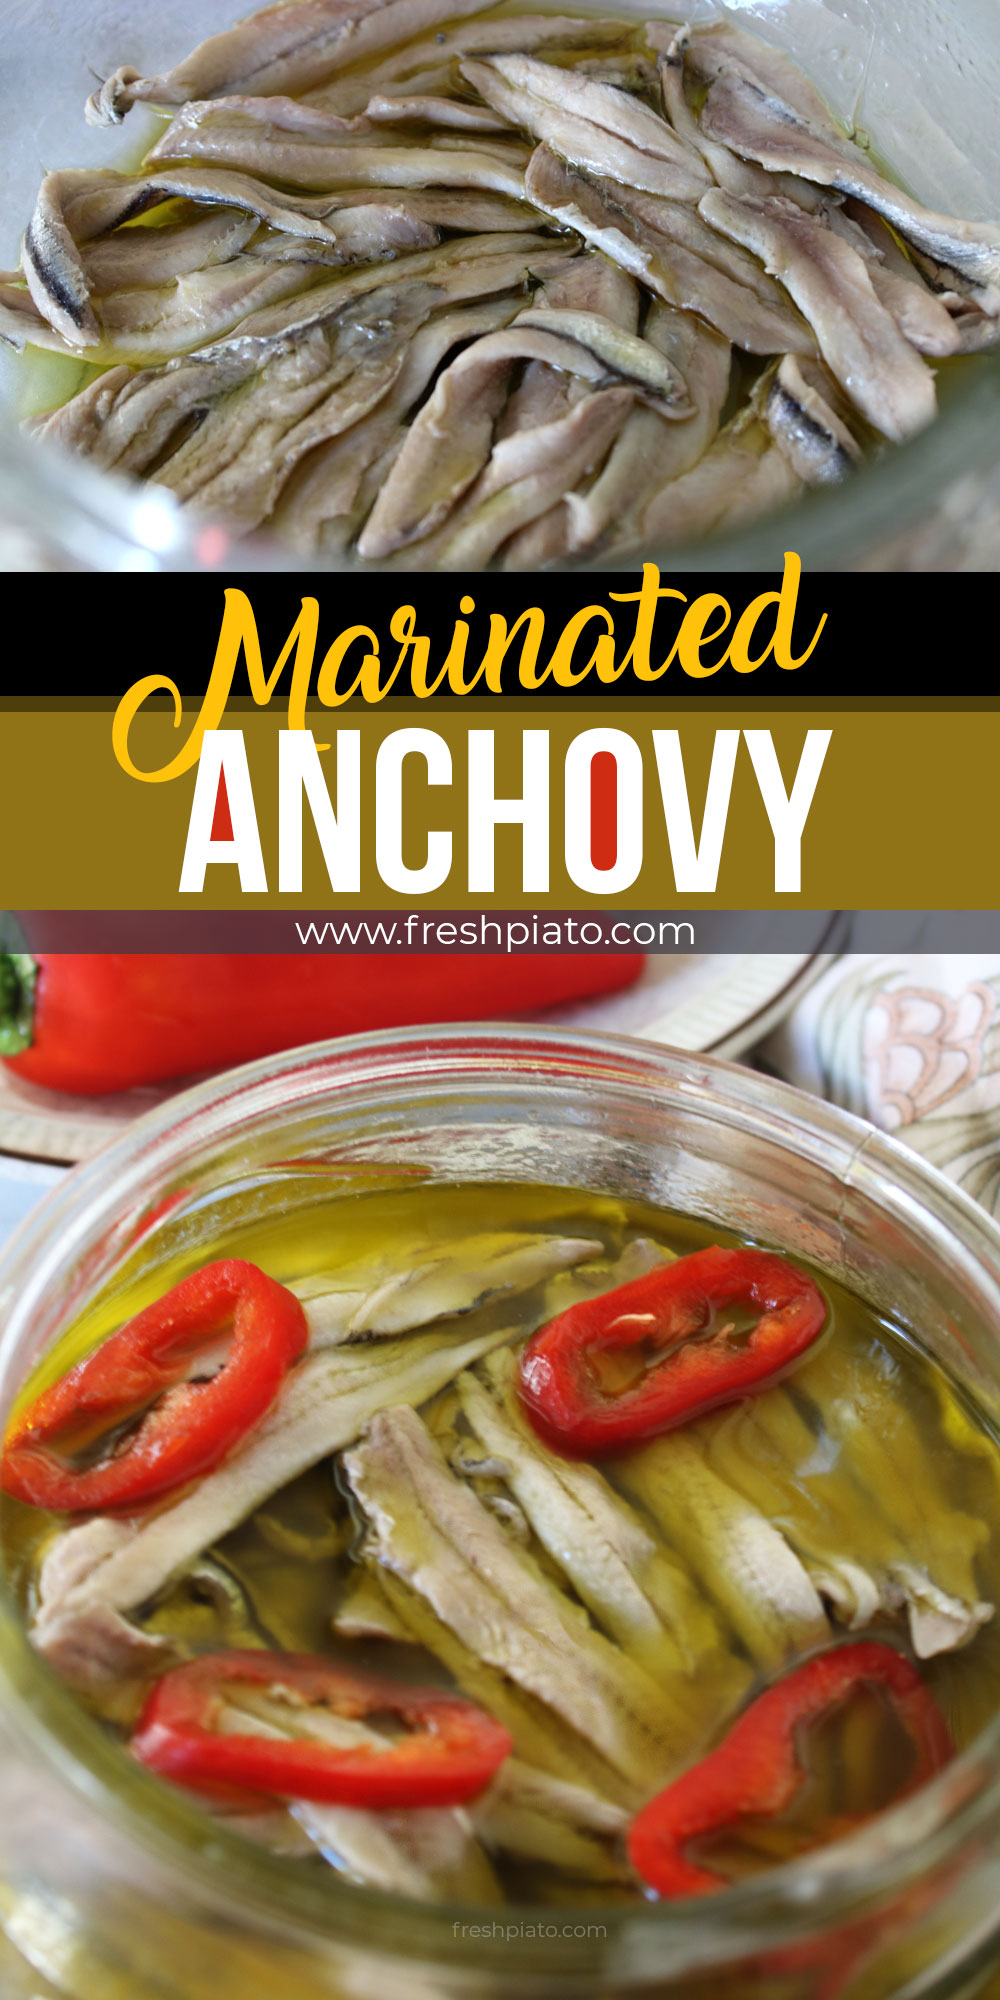 Marinated anchovy pinterest image